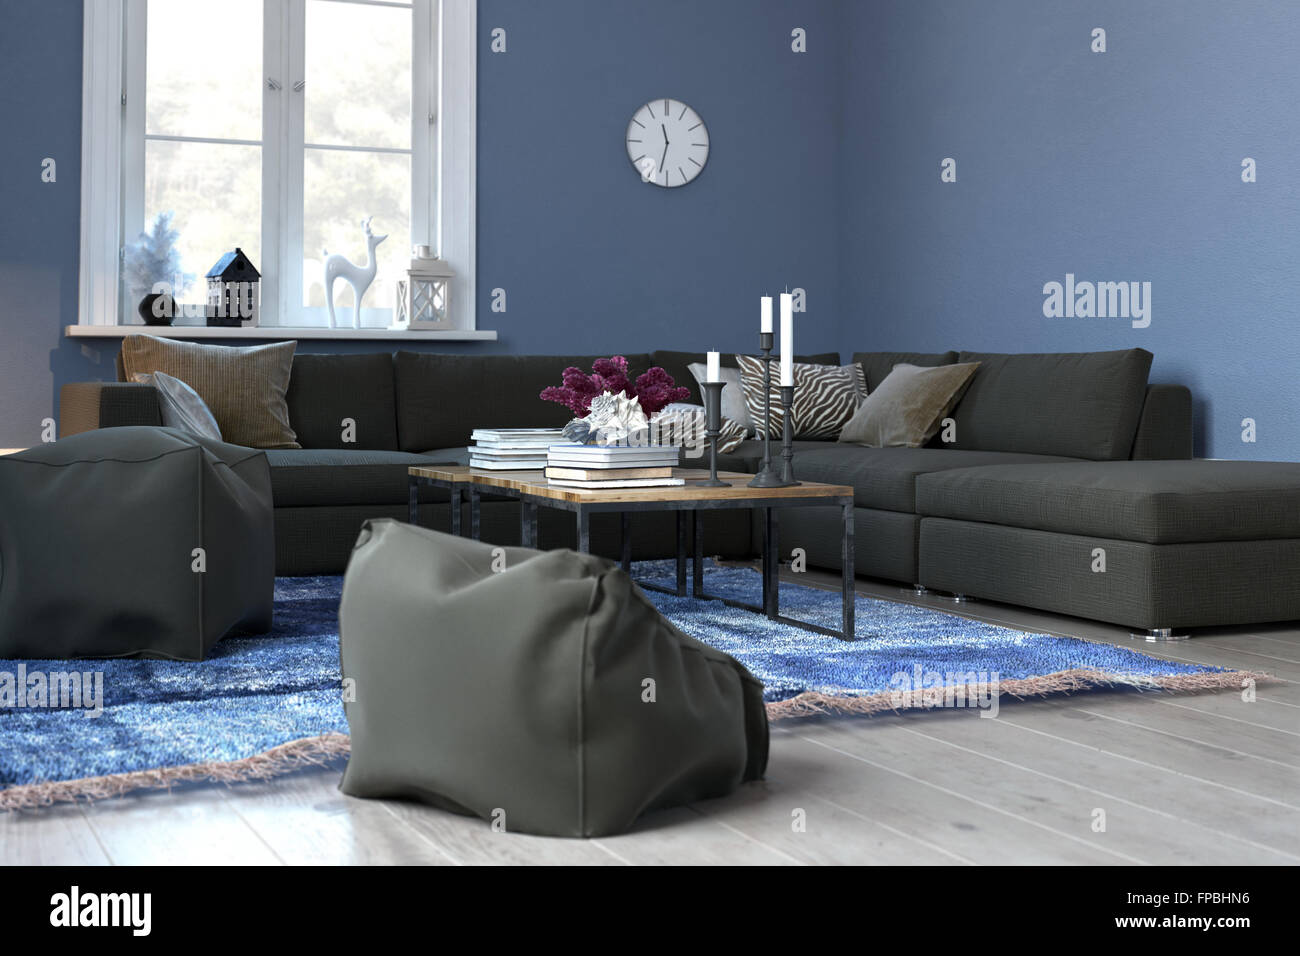 Outstanding Cozy Blue Living Room With Sectional Sofa And Plush Bean Bag Inzonedesignstudio Interior Chair Design Inzonedesignstudiocom